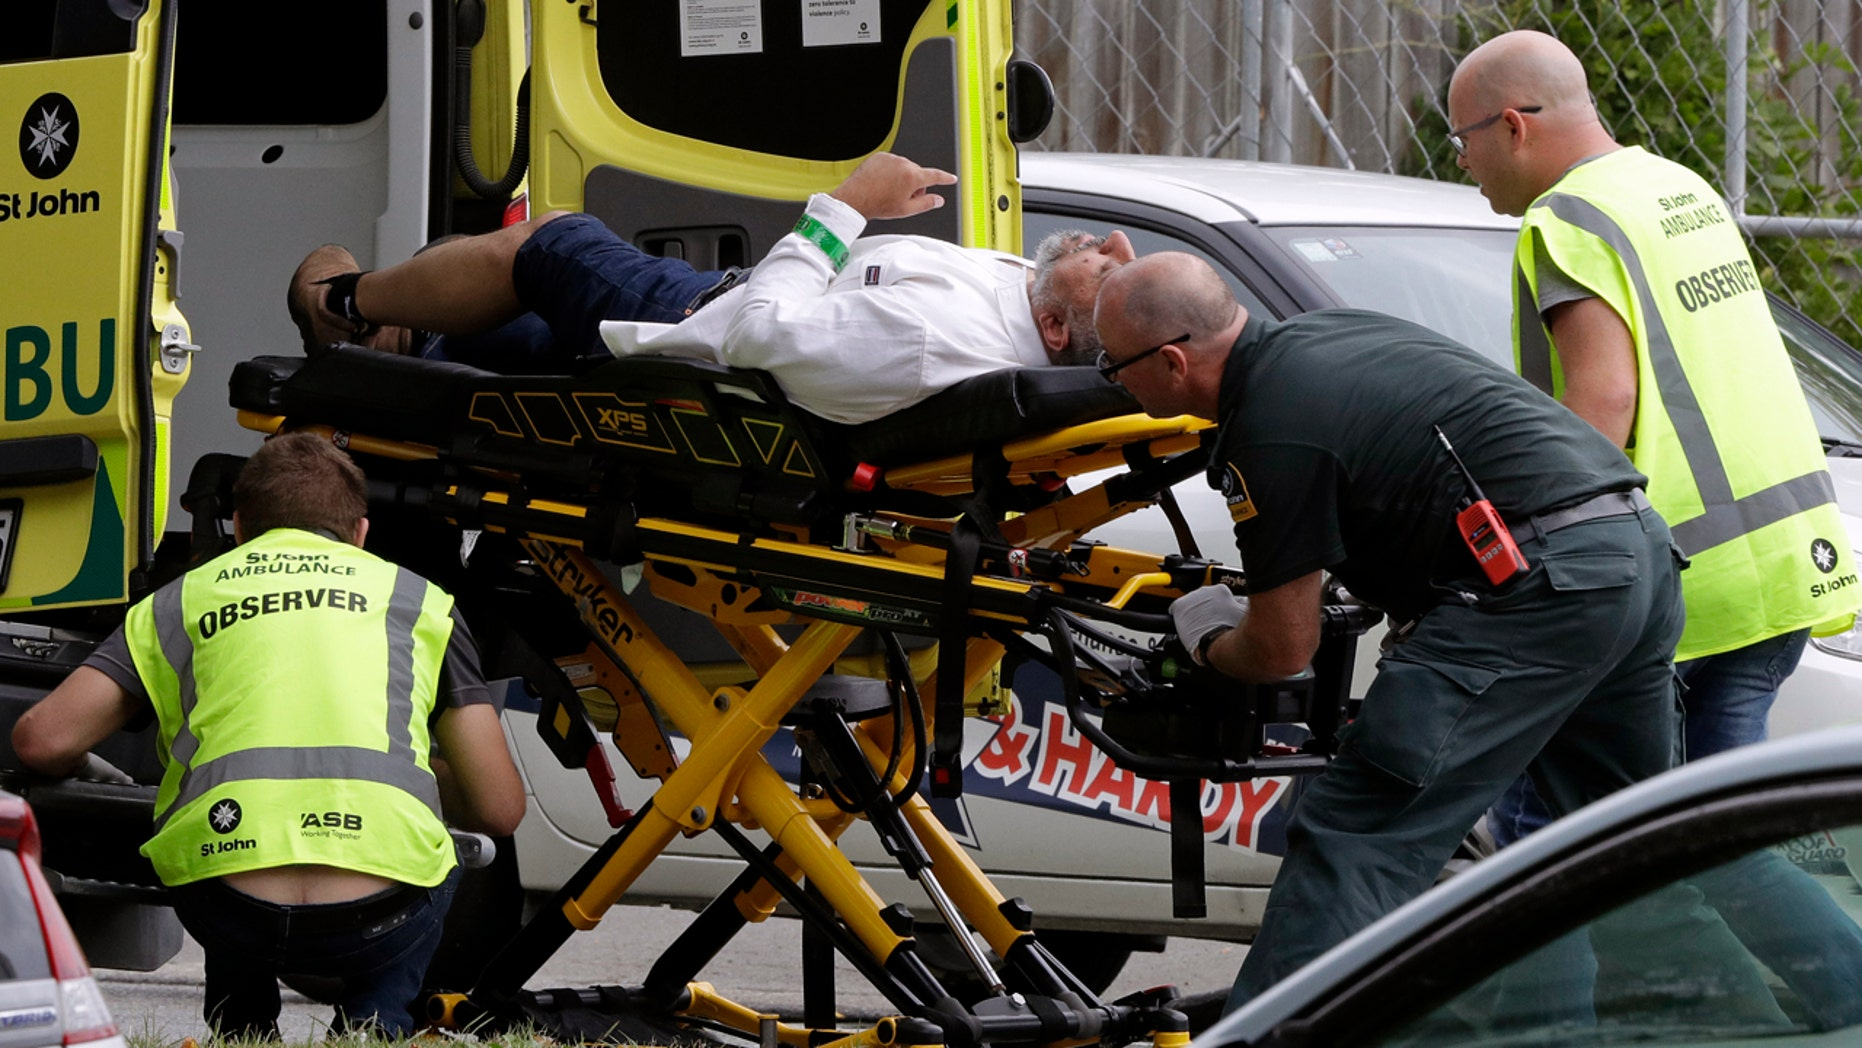 New Zealand Mosque Shooter Livestreamed Killings On Facebook: Witnesses Say Many Dead, Injured In Shooting At New